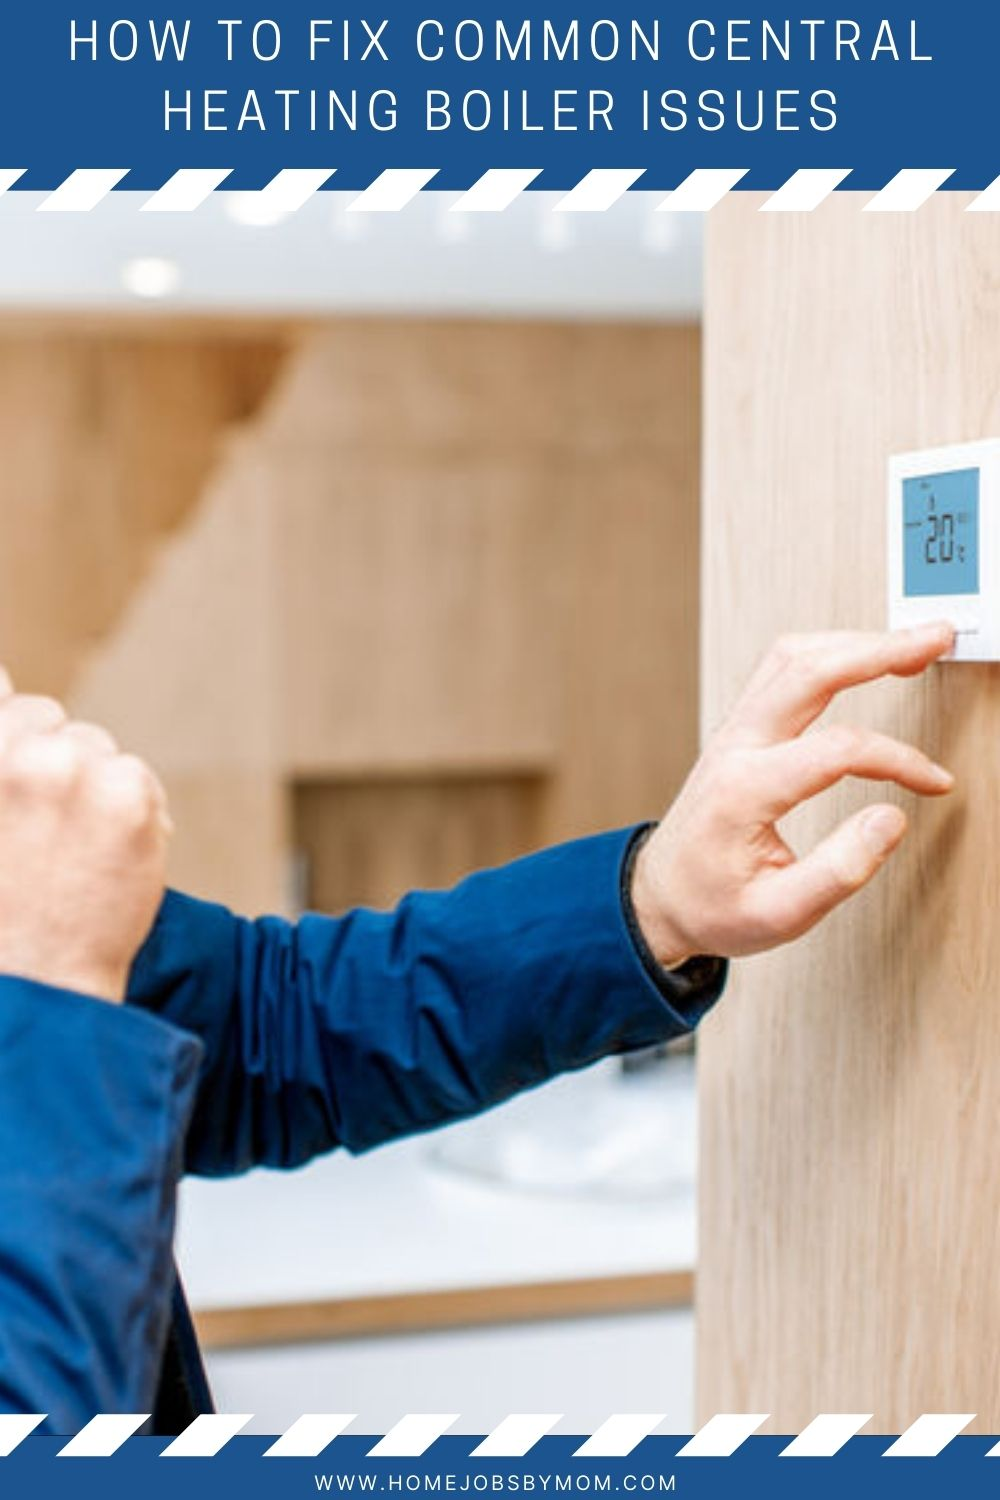 How To Fix Common Central Heating Boiler Issues